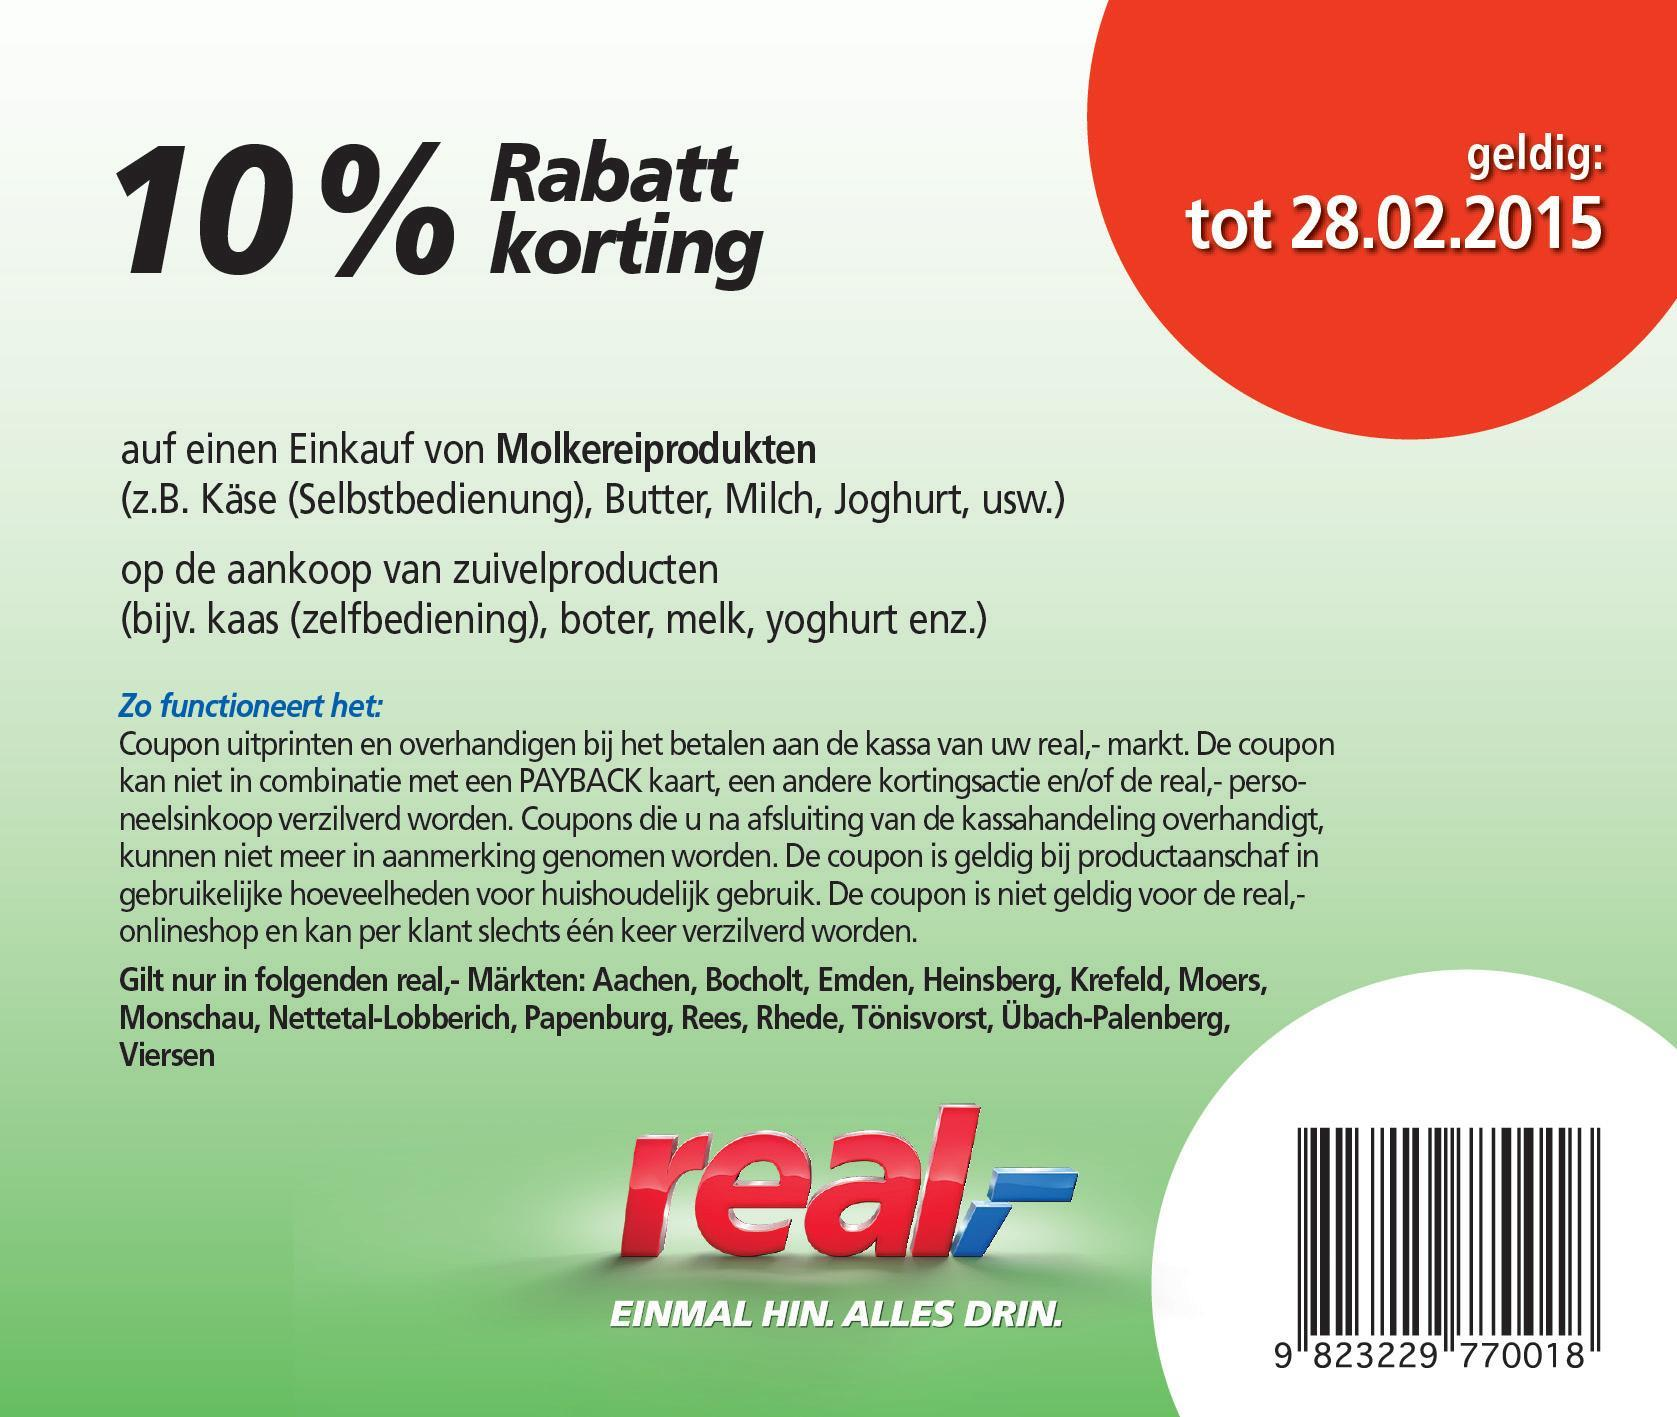 coupons_feb_2015_nl-popd6t.jpg